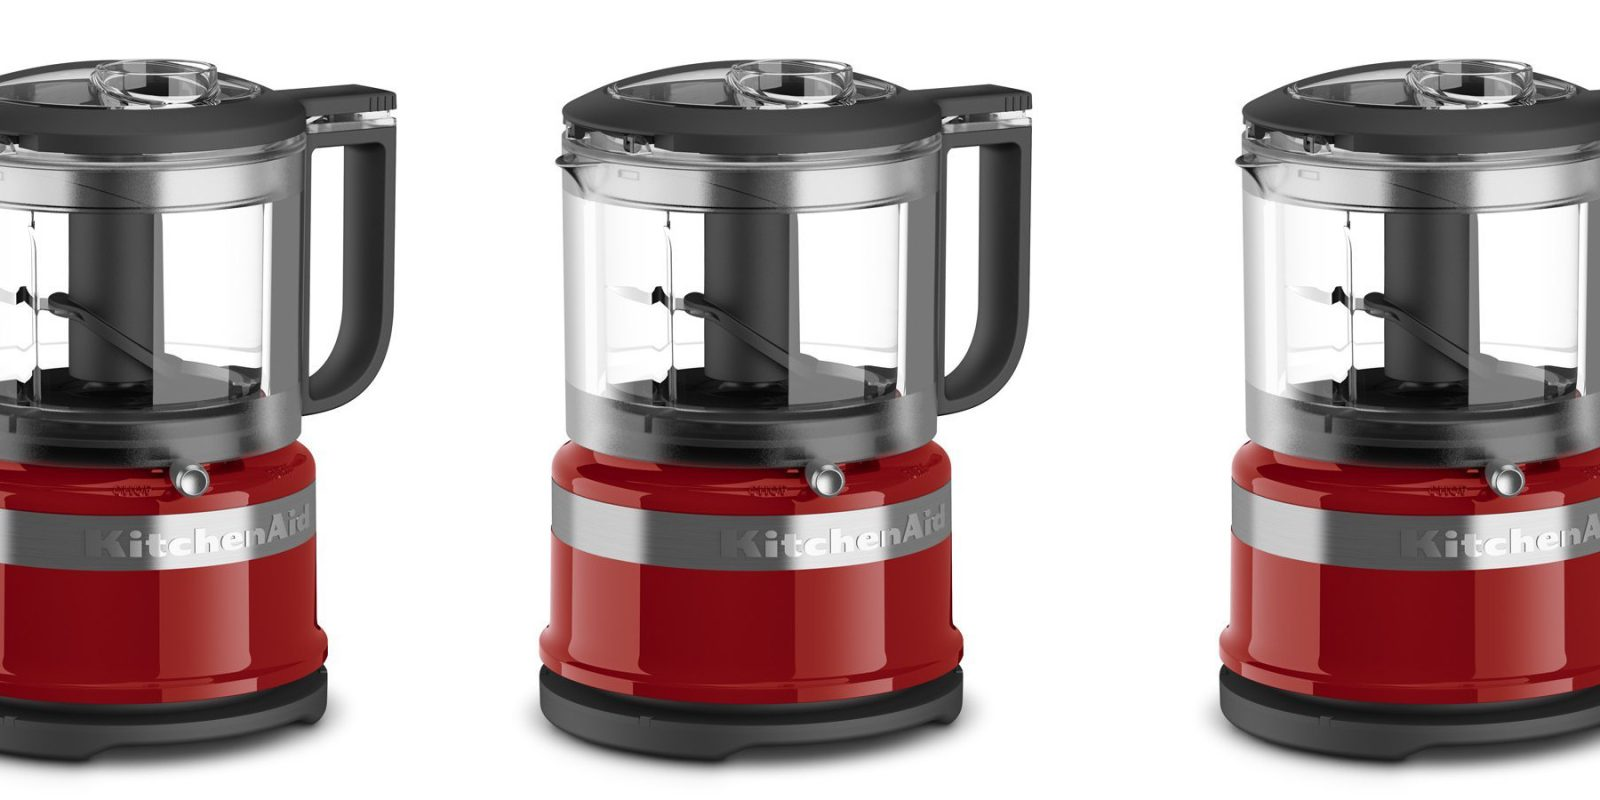 The Compact Kitchenaid 3 5 Cup Mini Food Processor Is Just